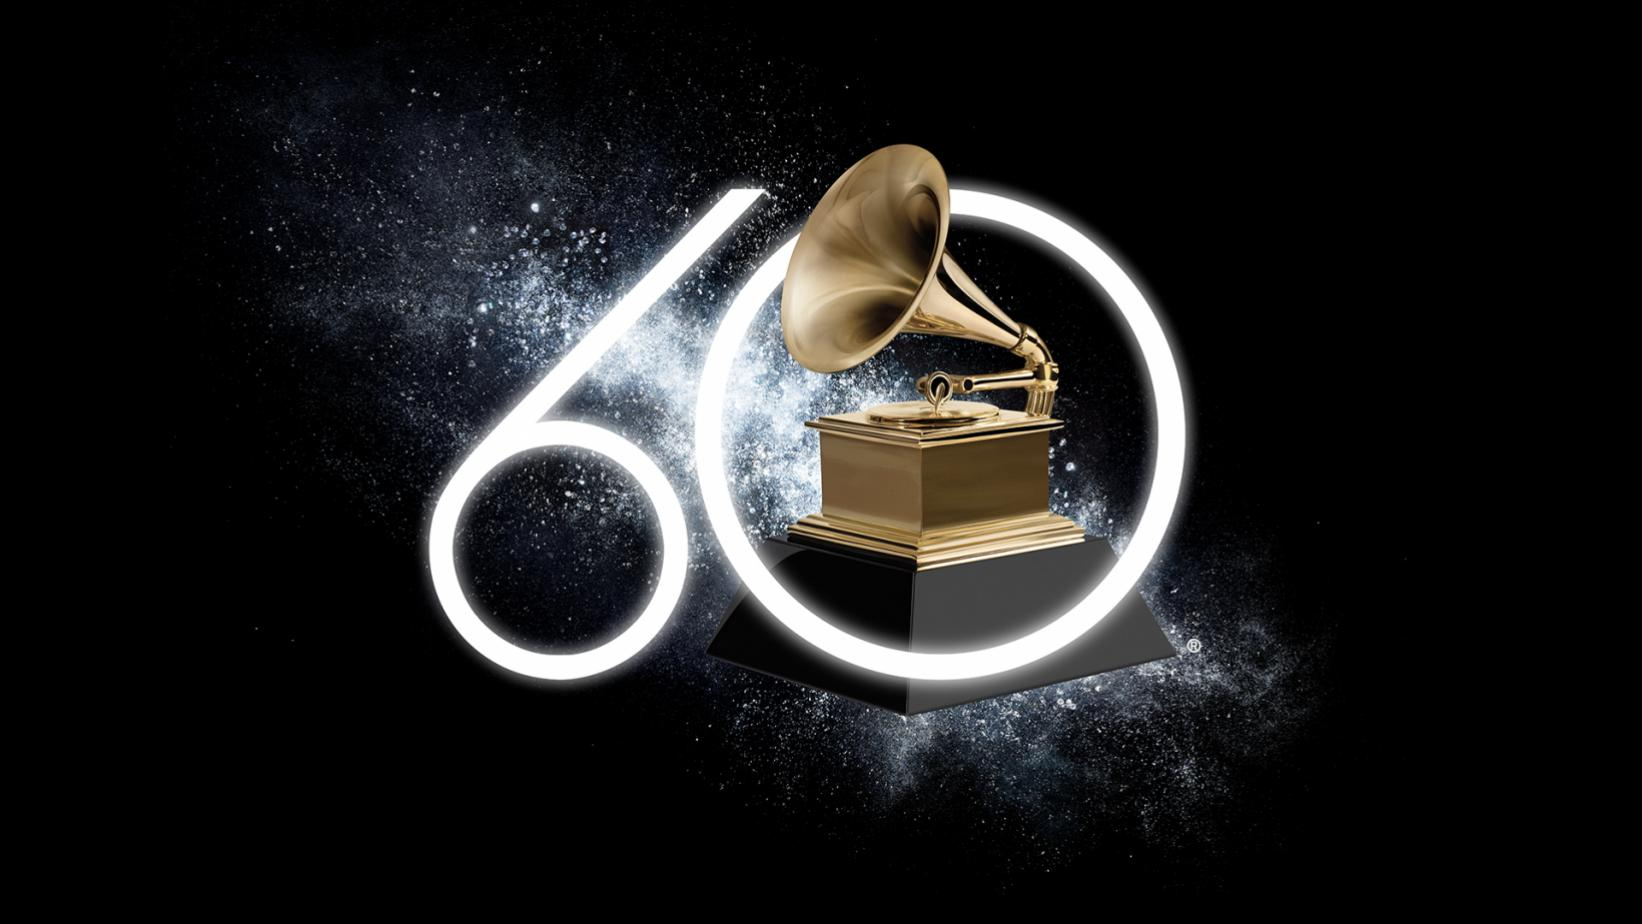 The 60th   Annual Grammy Awards Presenters Are Announced